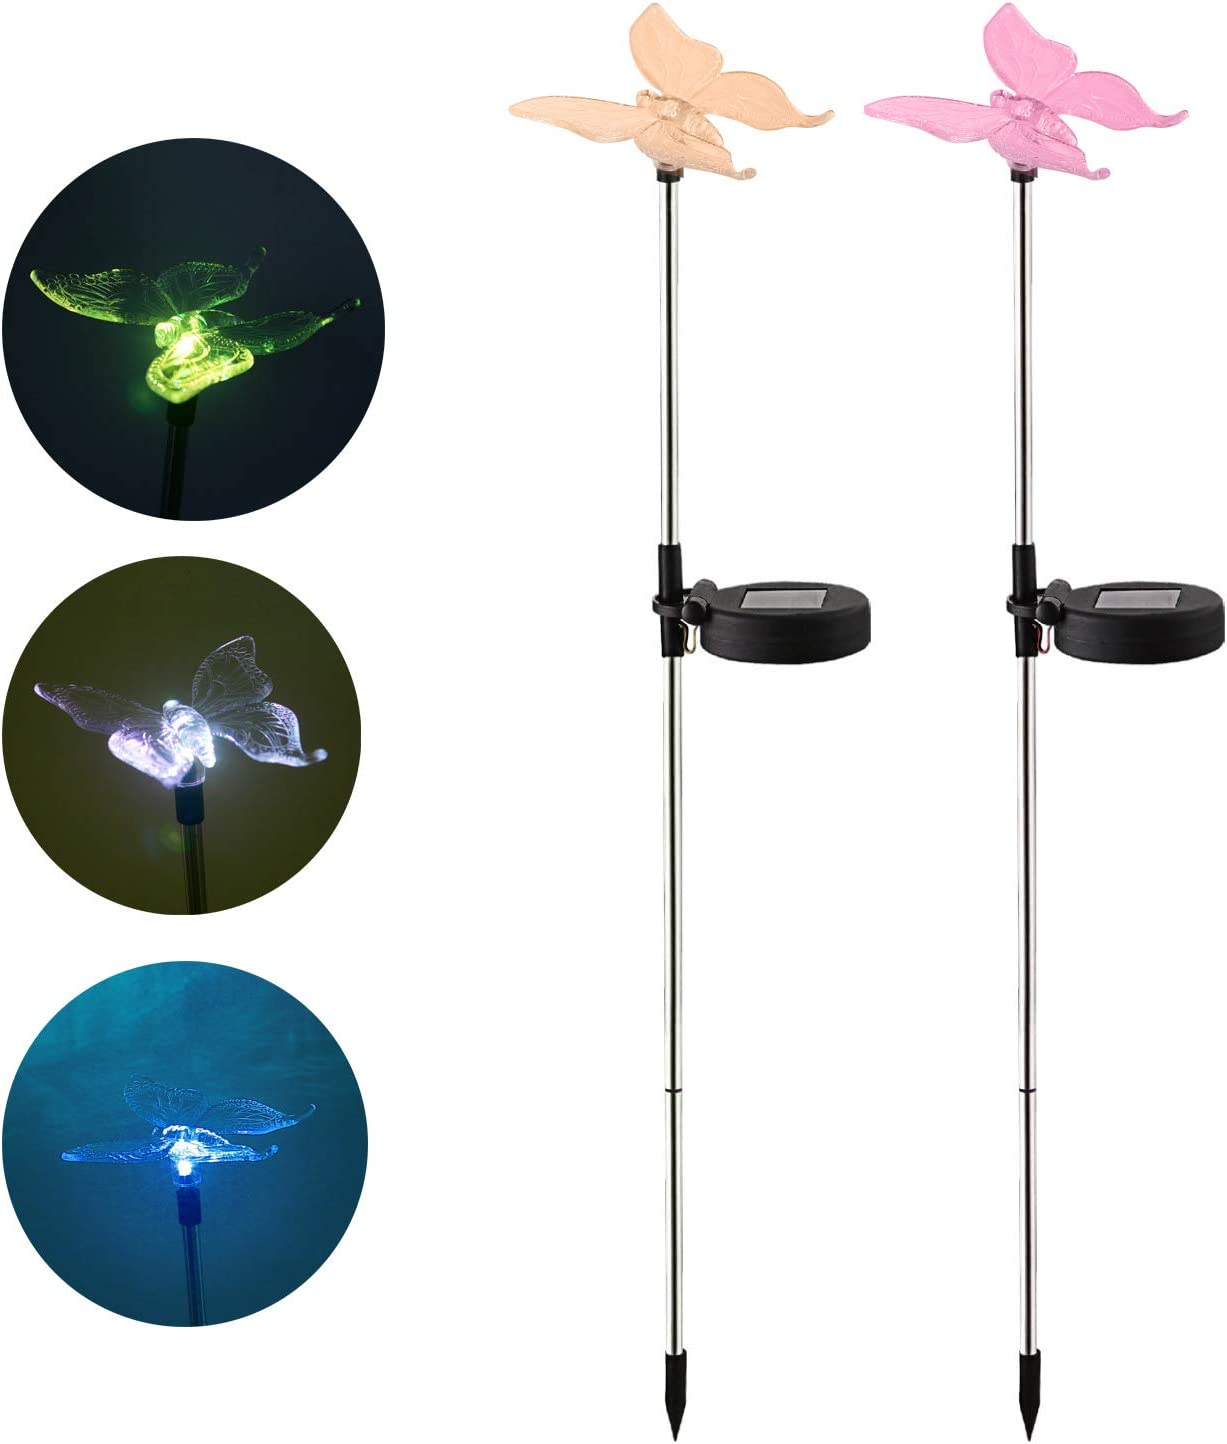 Outdoor Waterproof Color Changing Solar Garden Stake Light with Vivid Butterfly Figurine, LED Garden Landscape In-ground Path Light for Yard Lawn Halloween Christmas Decorations Flower Beds 2 Pack